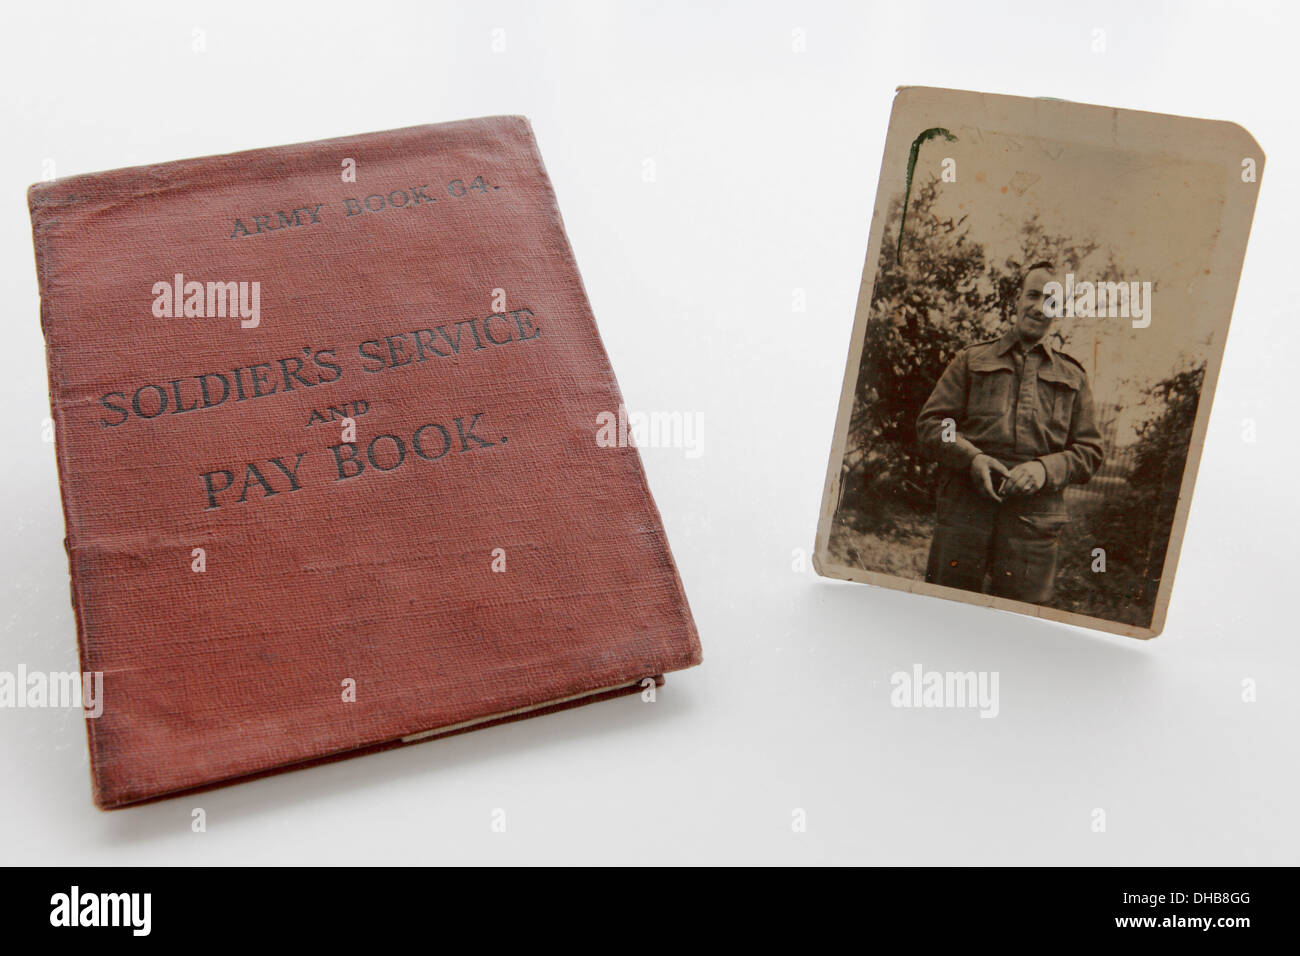 Photograph of WWII soldier Mr.Thomas Henry Wheeler alongside his Army Book 64 Soldier`s Service and Pay Book. - Stock Image